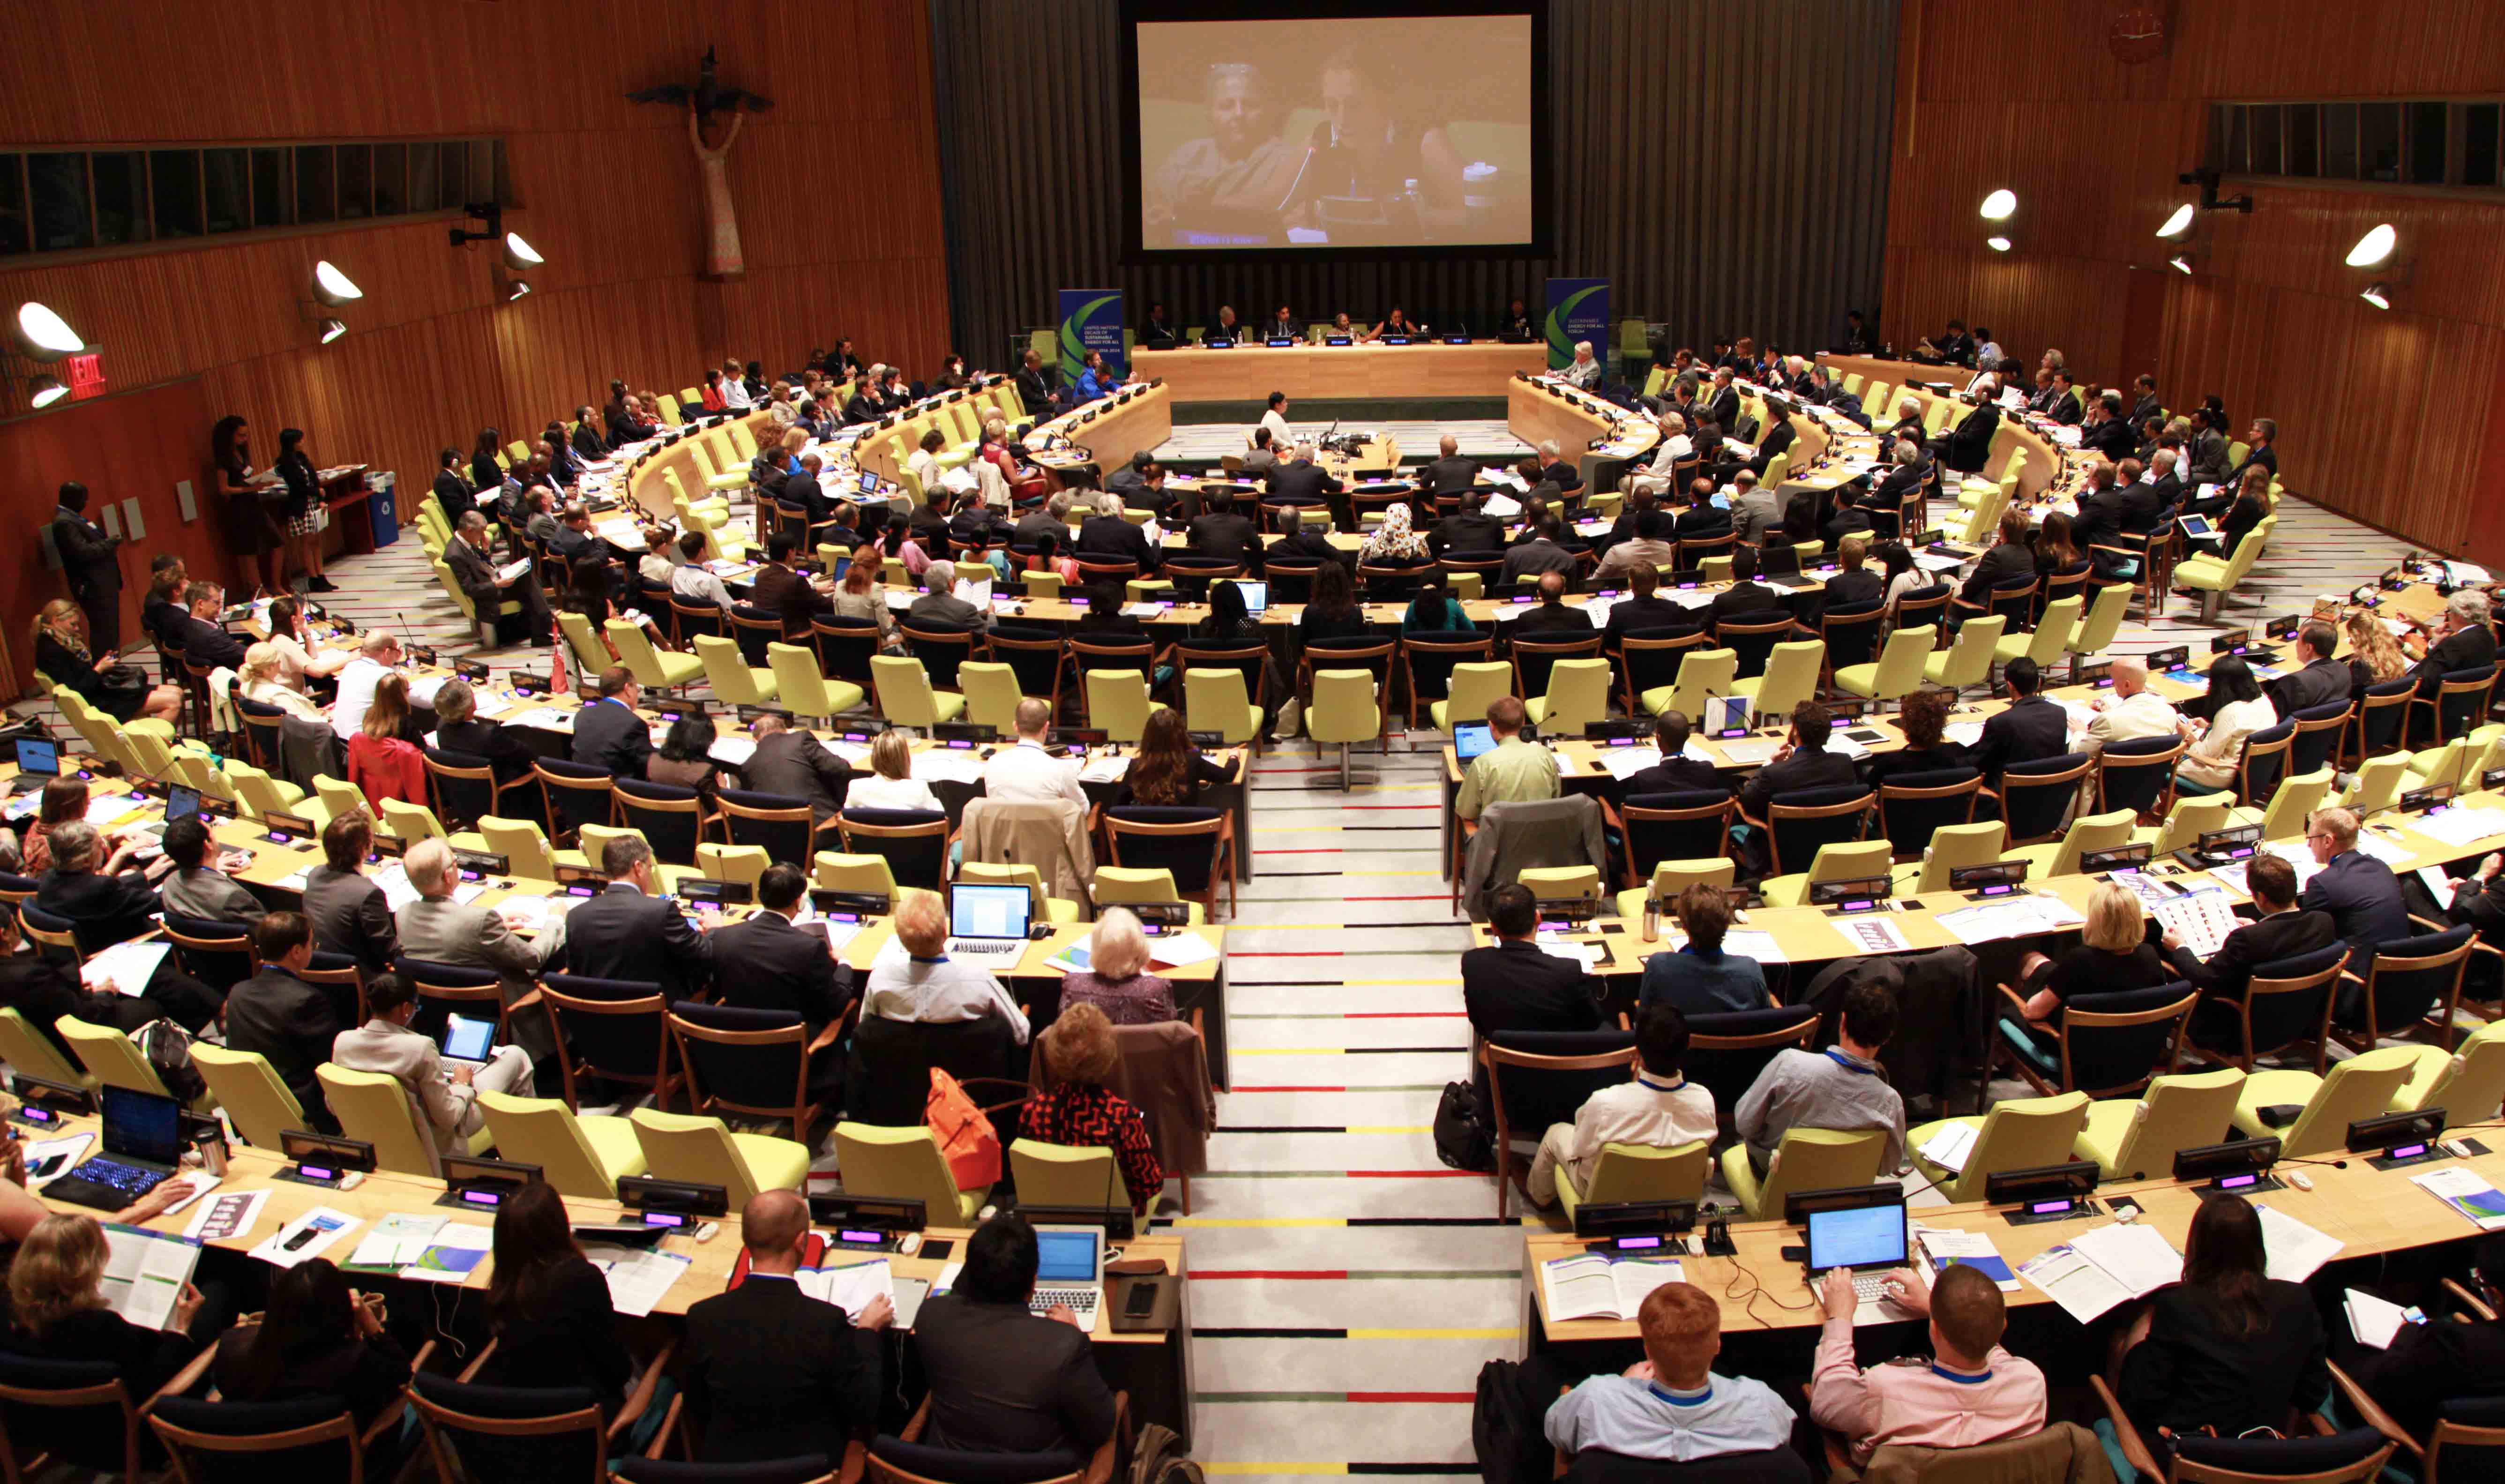 Attending the Se4All Forum is crucial to the development and access to green energy technologies